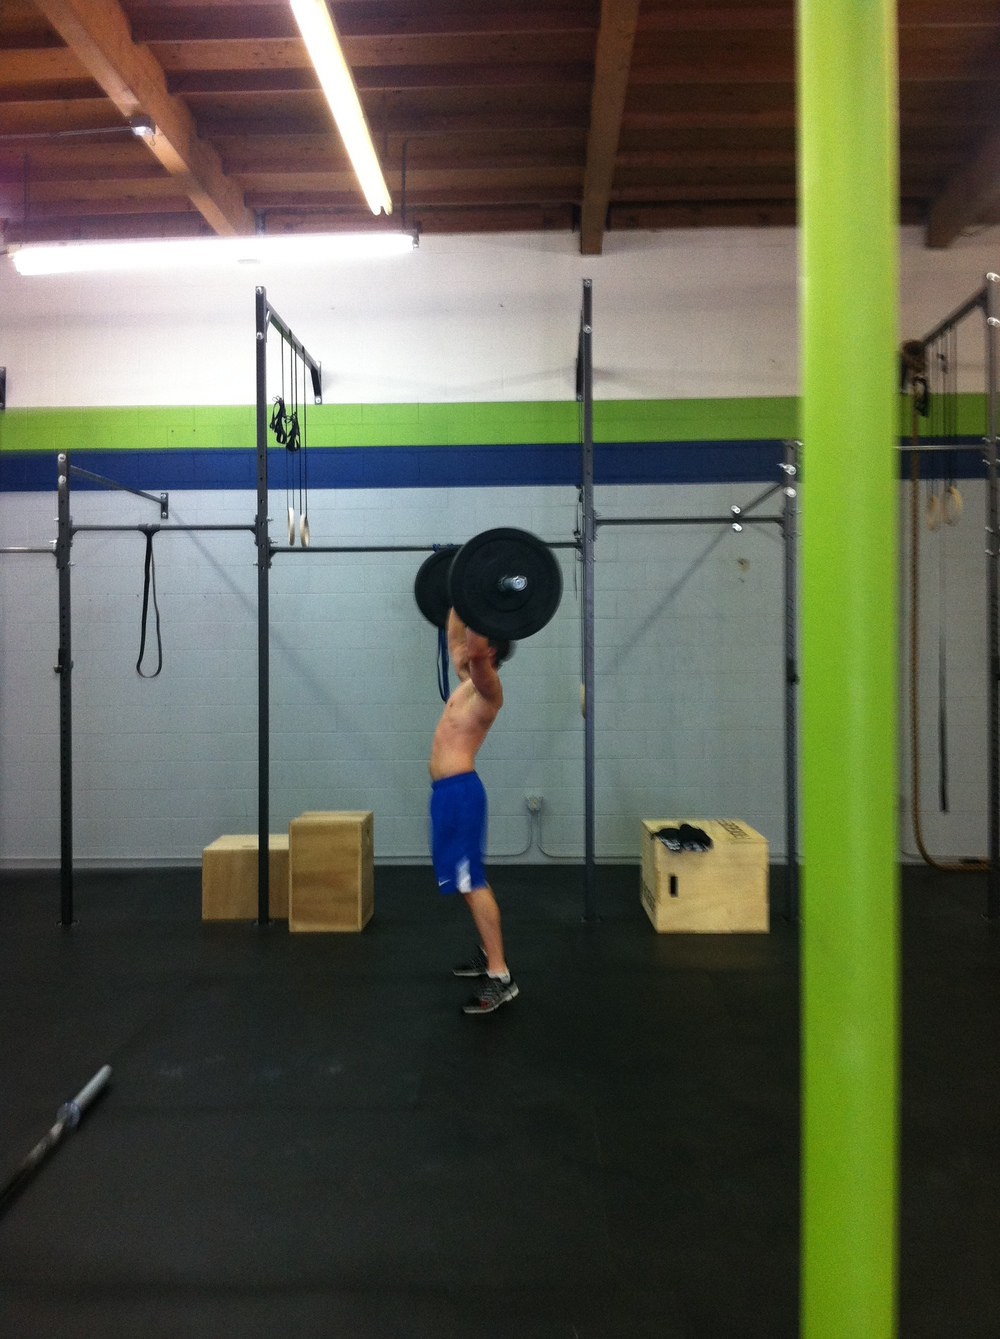 Shoutout to Mike for making it through those 135# thrusters - BEAST.